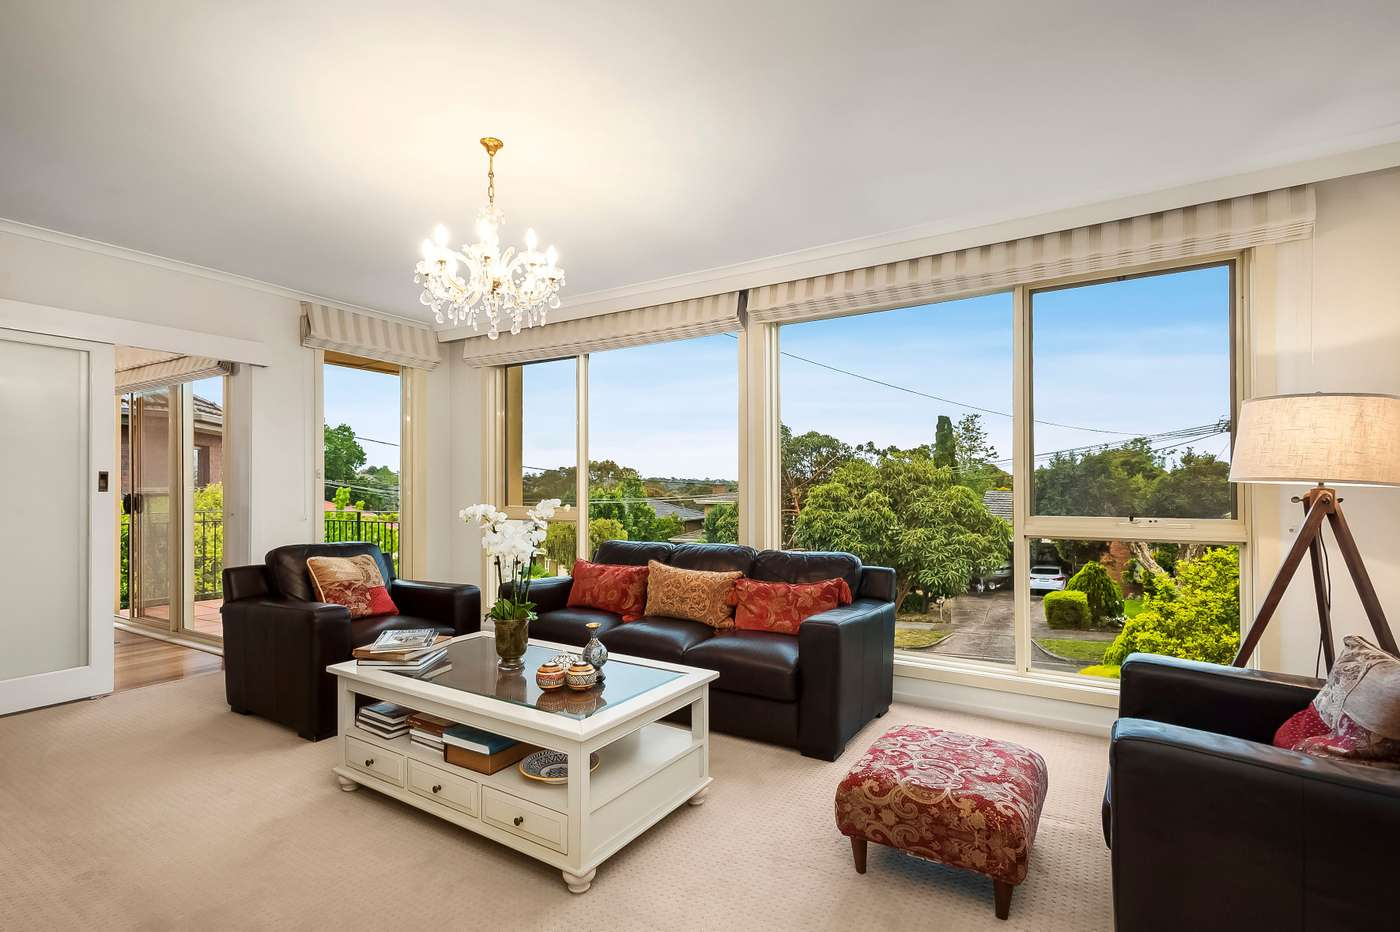 Main view of Homely house listing, 11 Glenview Court, Glen Waverley, VIC 3150